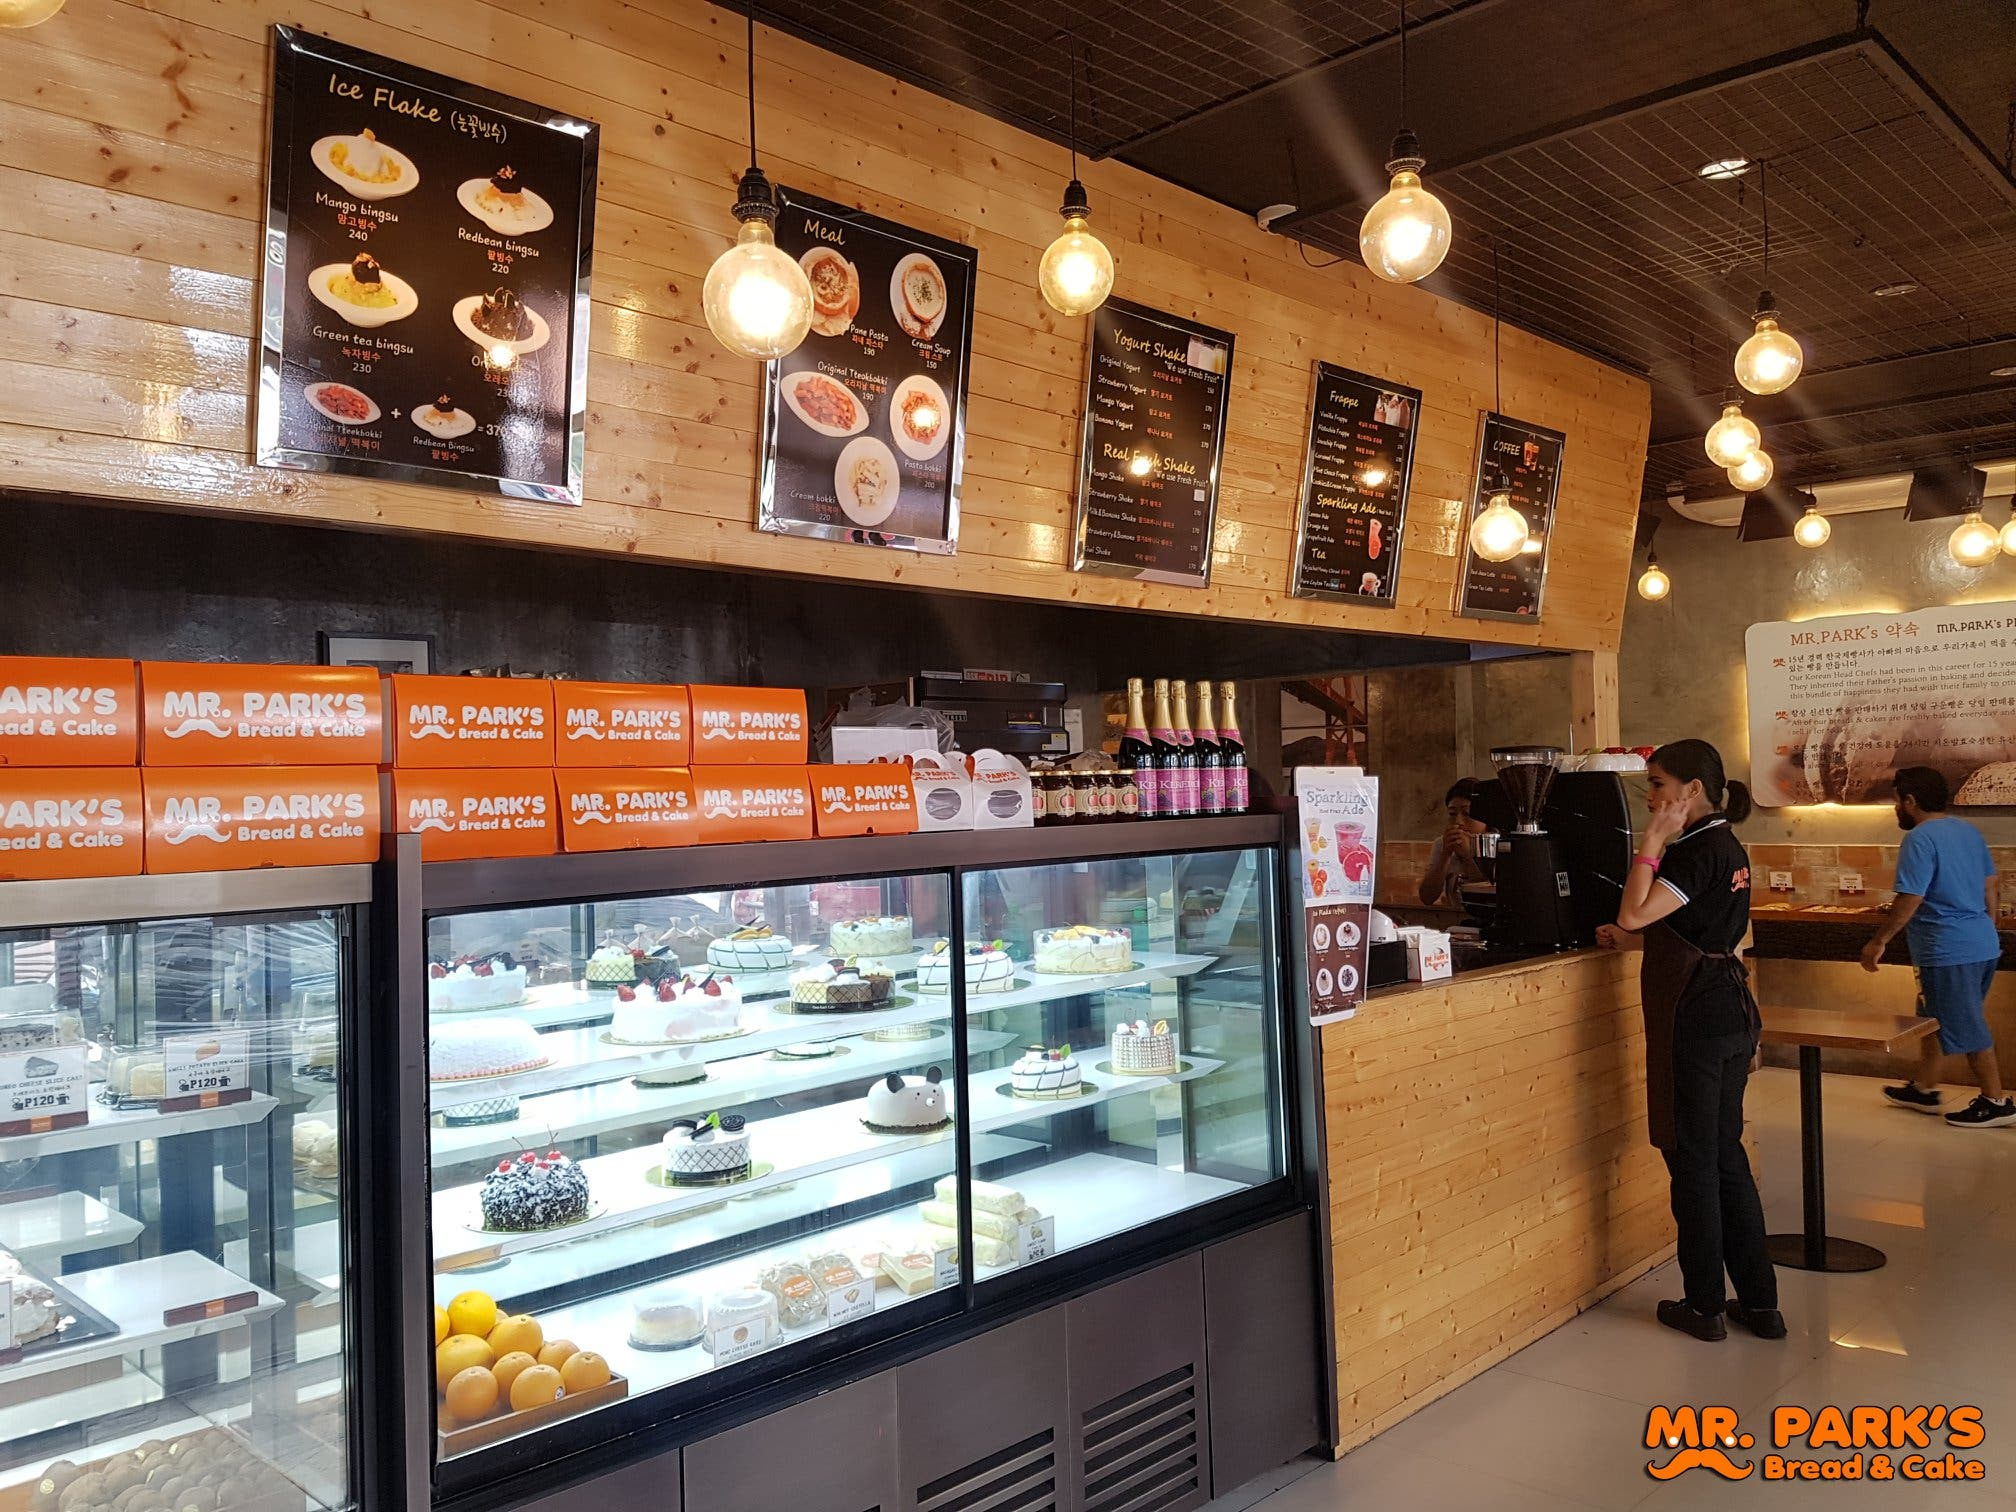 Mr Parks Bread and Cake - 9 Places to Make Tambay Near Taft